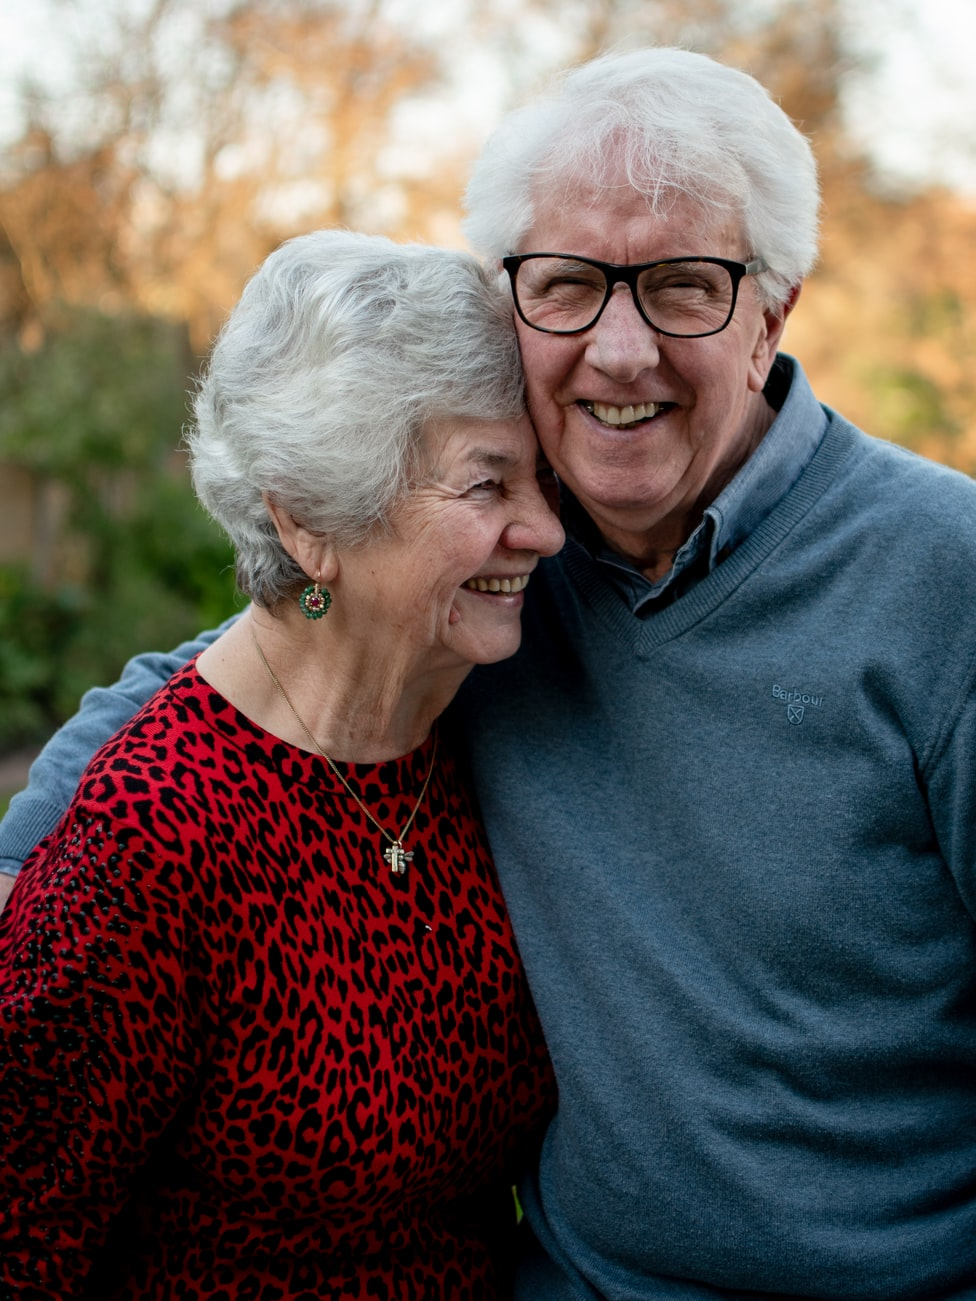 What You Need To Know About Healthy Ageing?